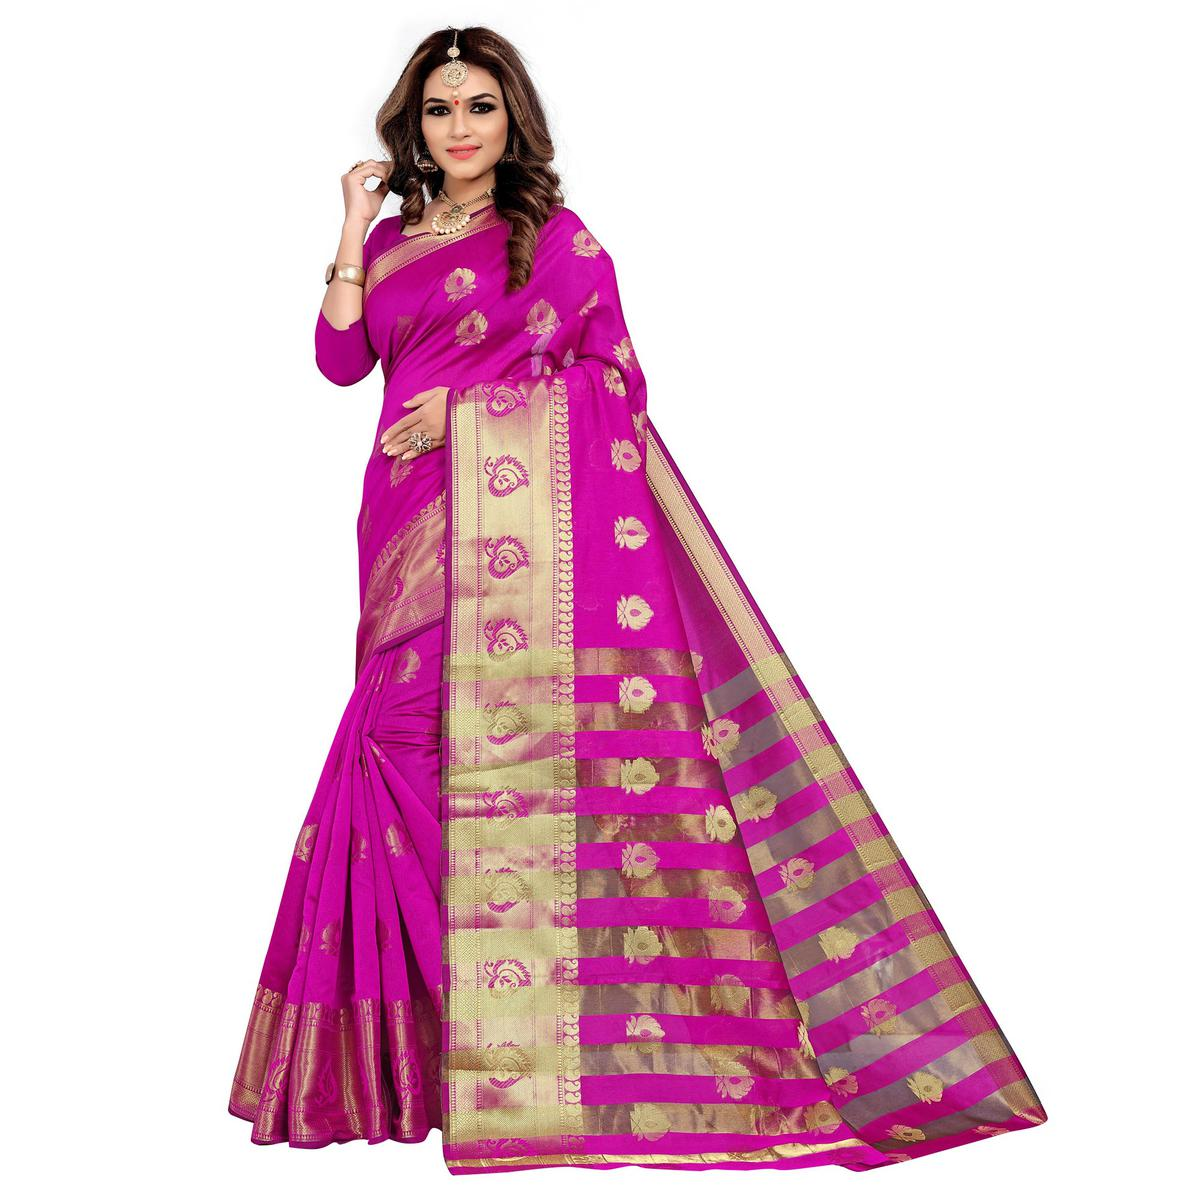 Flattering Pink Colored Festive Wear Woven Silk Saree